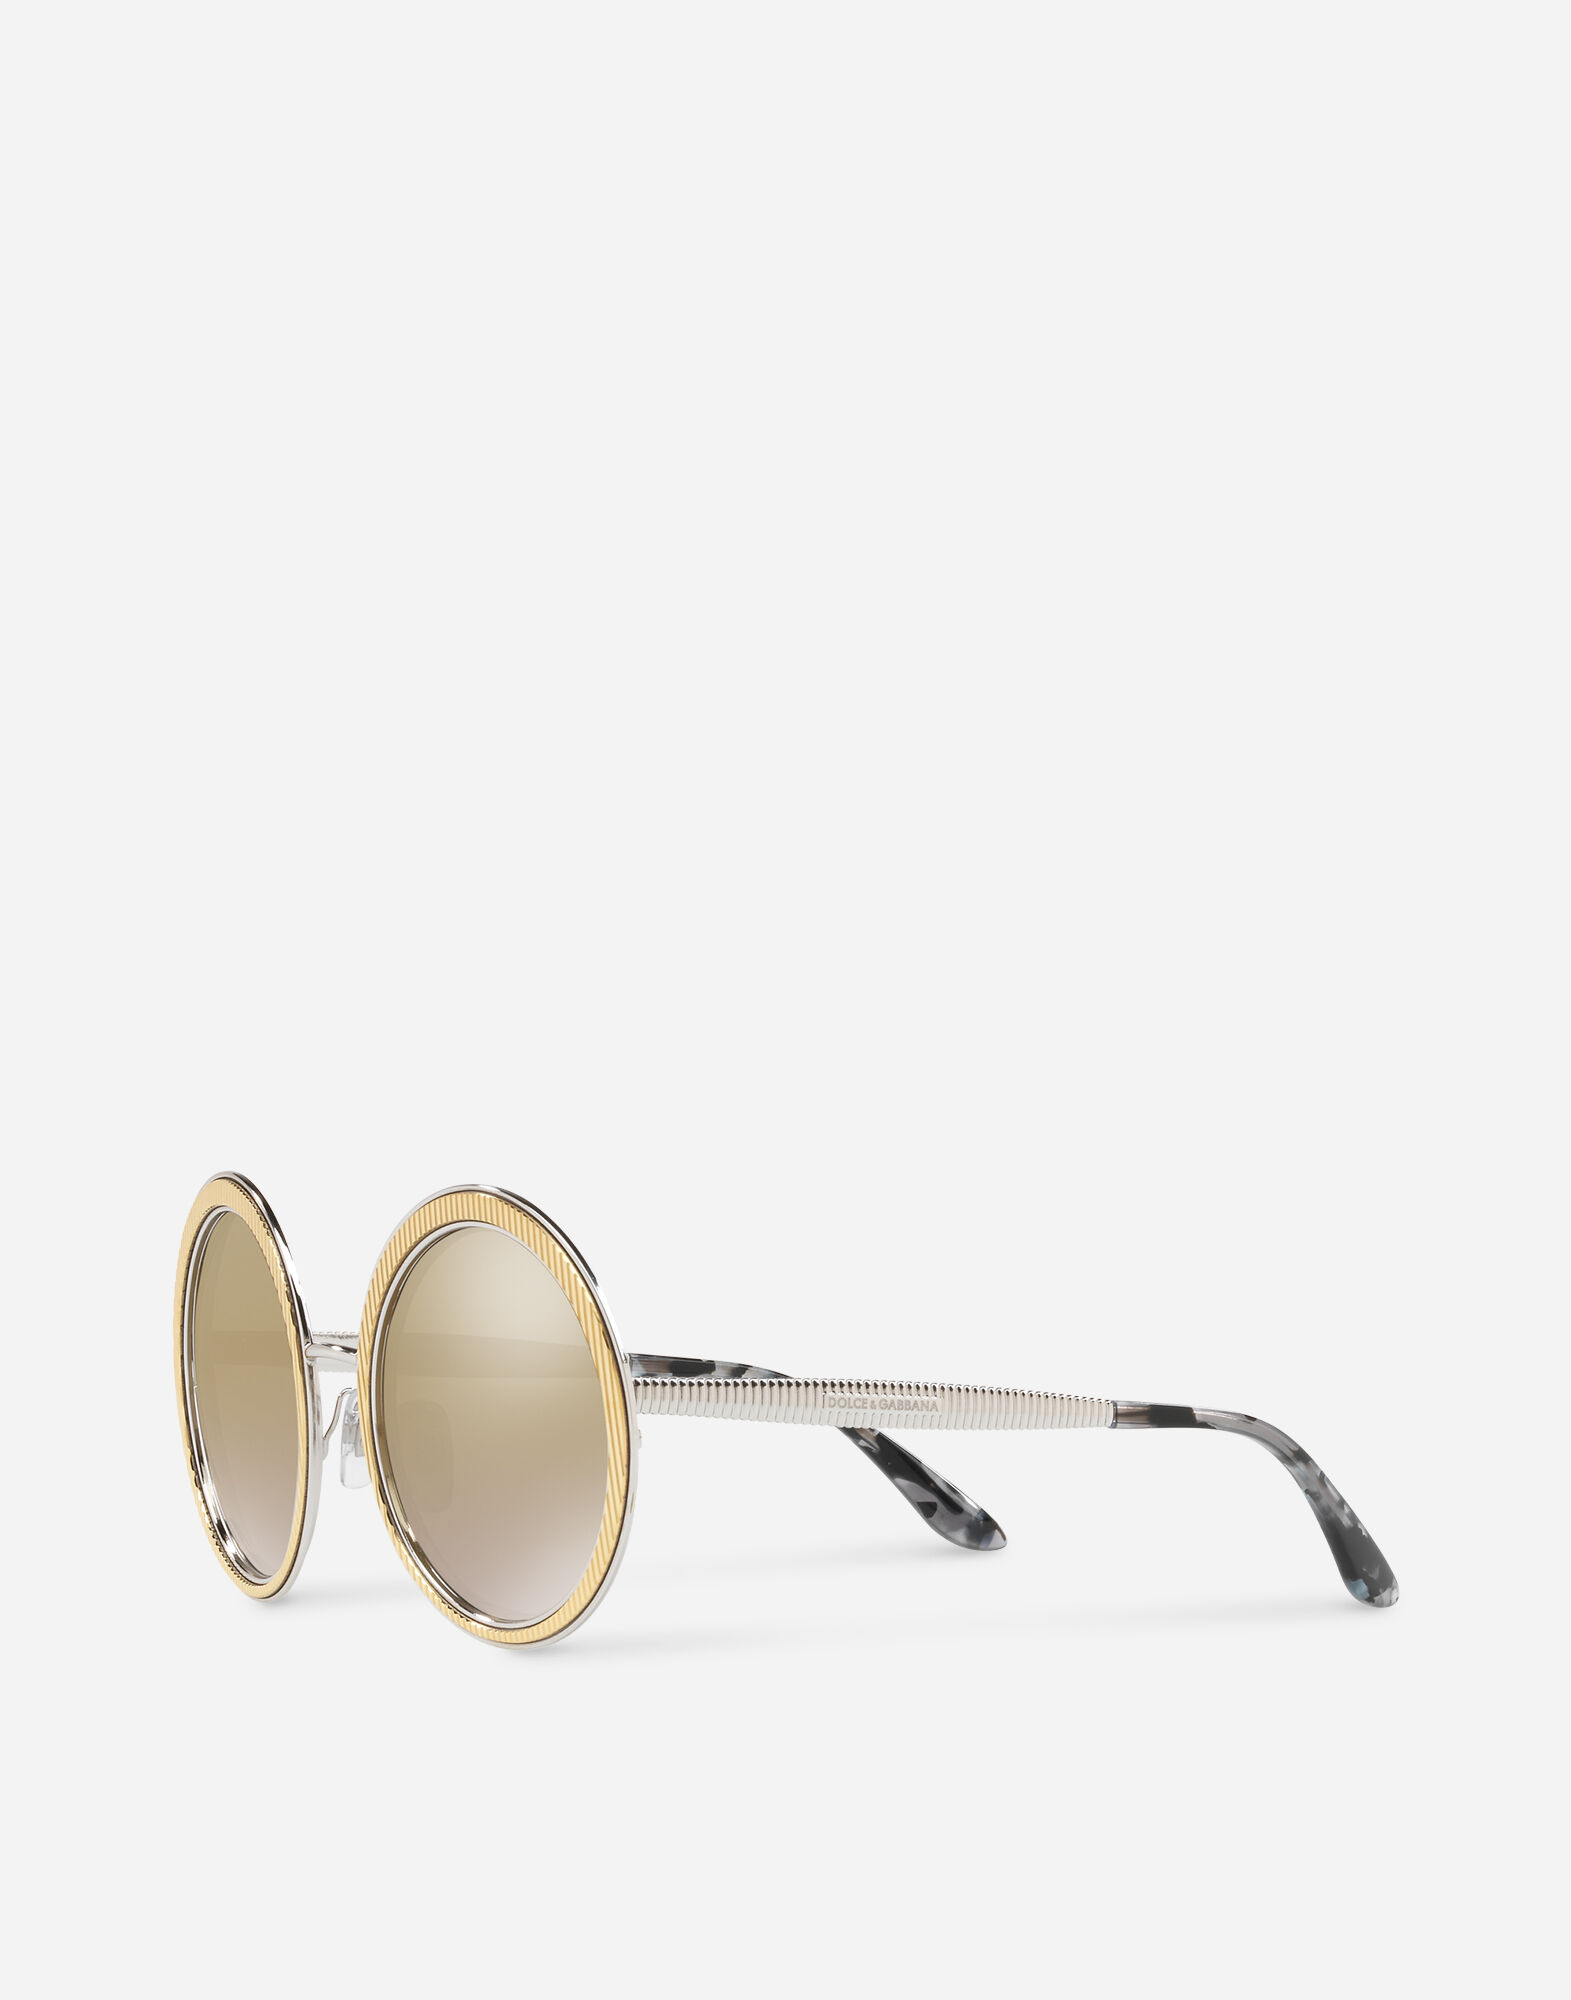 COPPER-SILVER ROUND SUNGLASSES